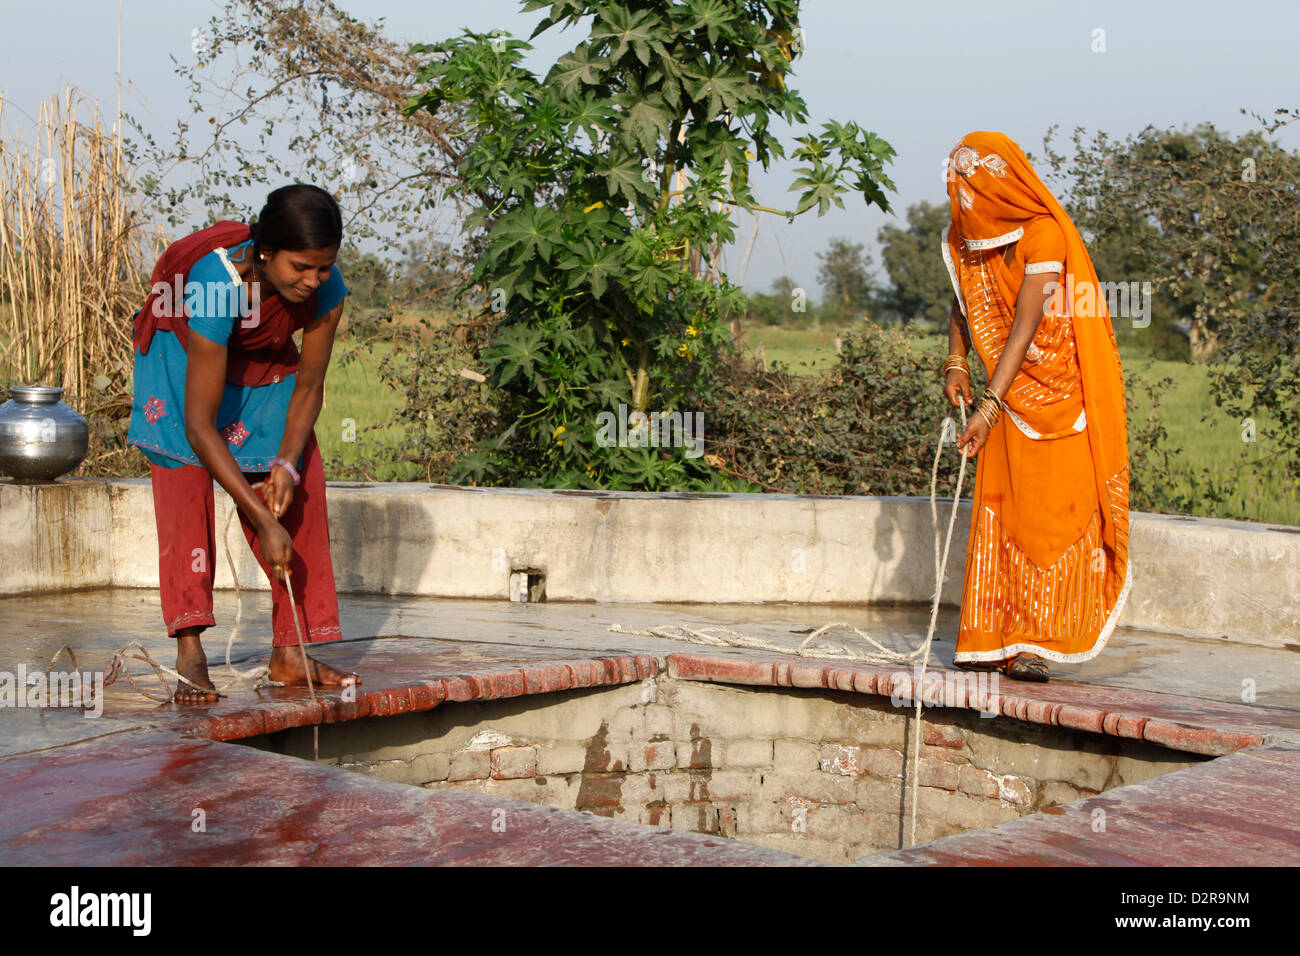 Women fetching water, Mathura, Uttar Pradesh, India, Asia - Stock Image